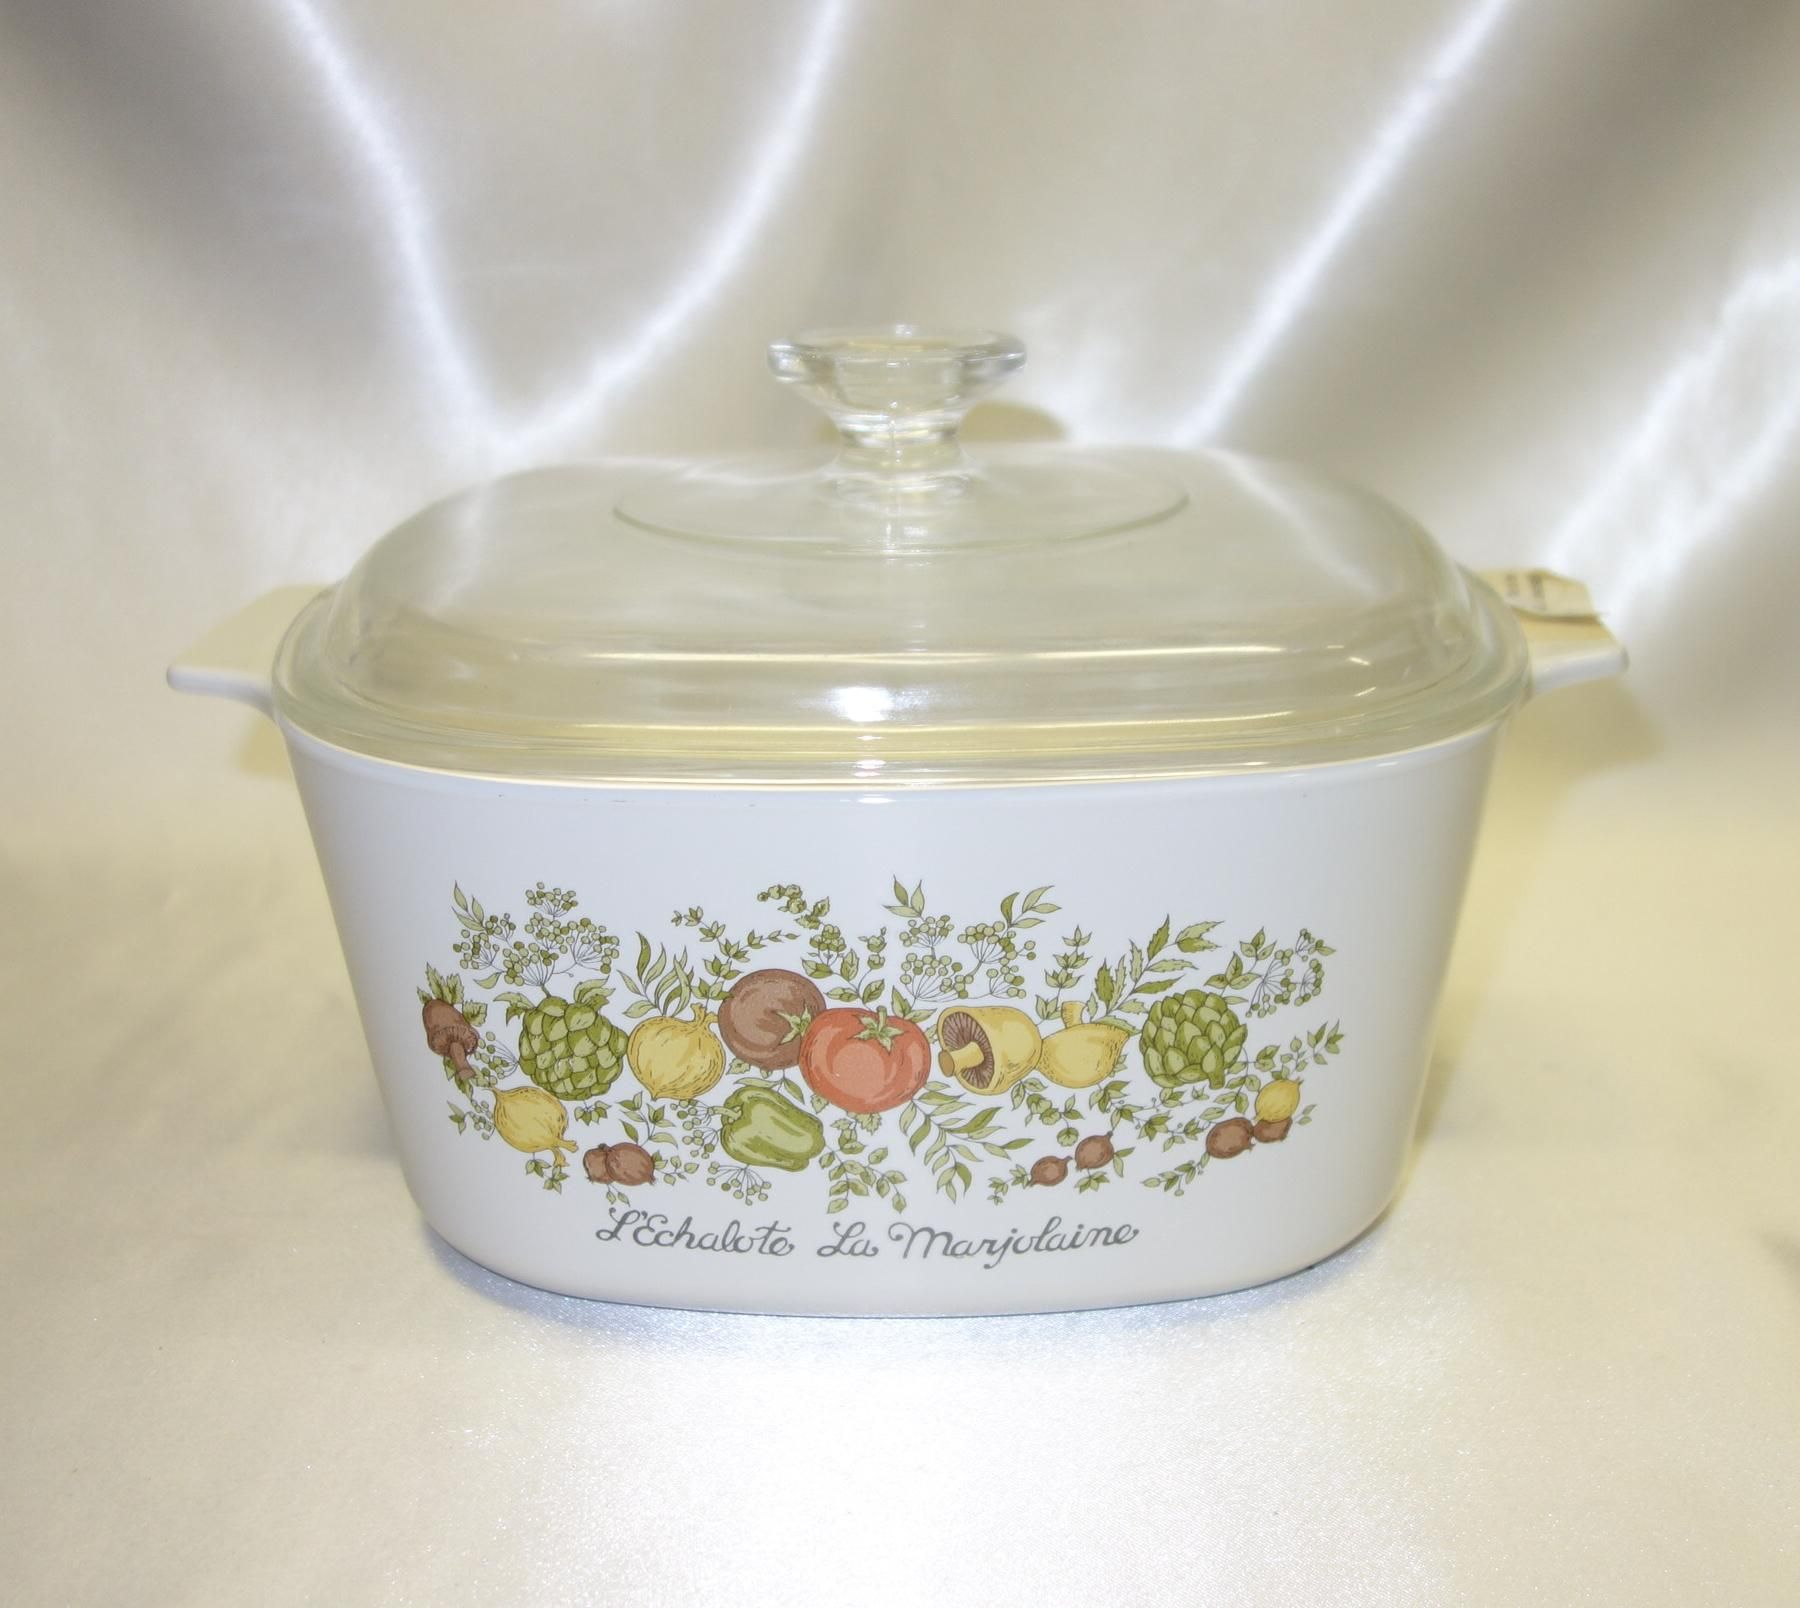 Corningware Range Oven And Microwave: Corning Ware 3 Quart Covered Casserole In The Spice Of